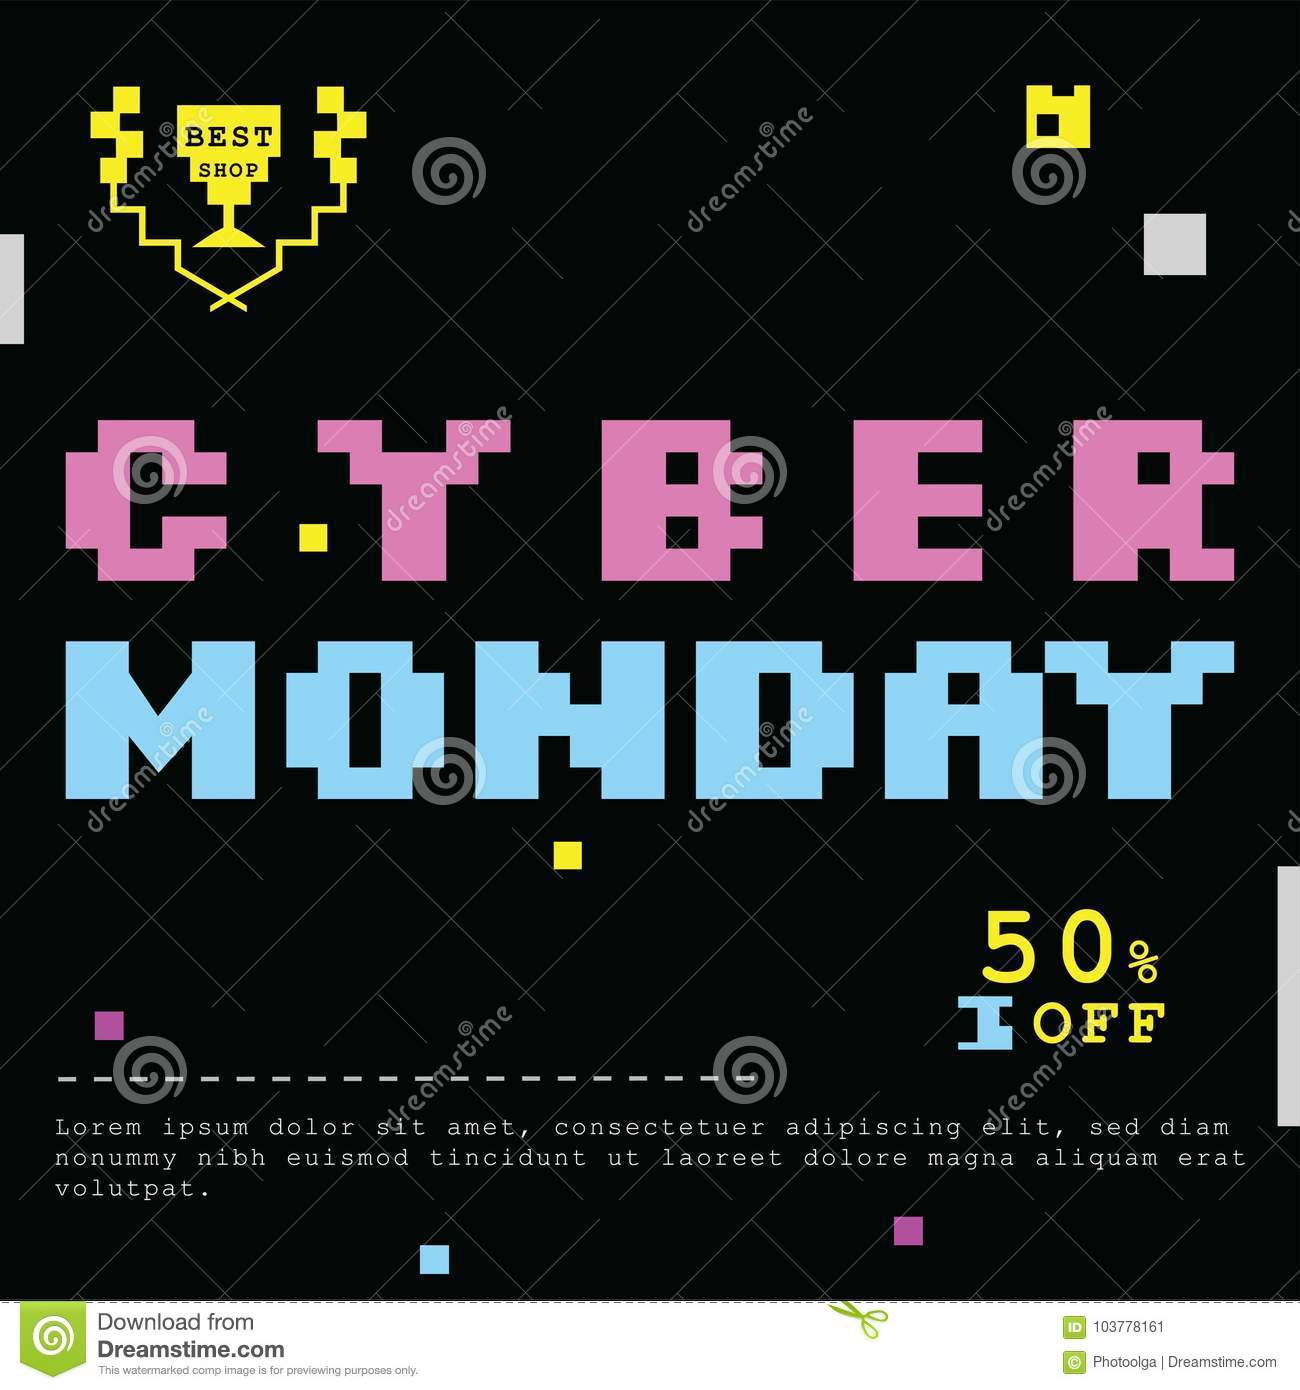 0a69f5d546 Cyber monday deals banner. Pink yellow blue pixel design elements on black  background.